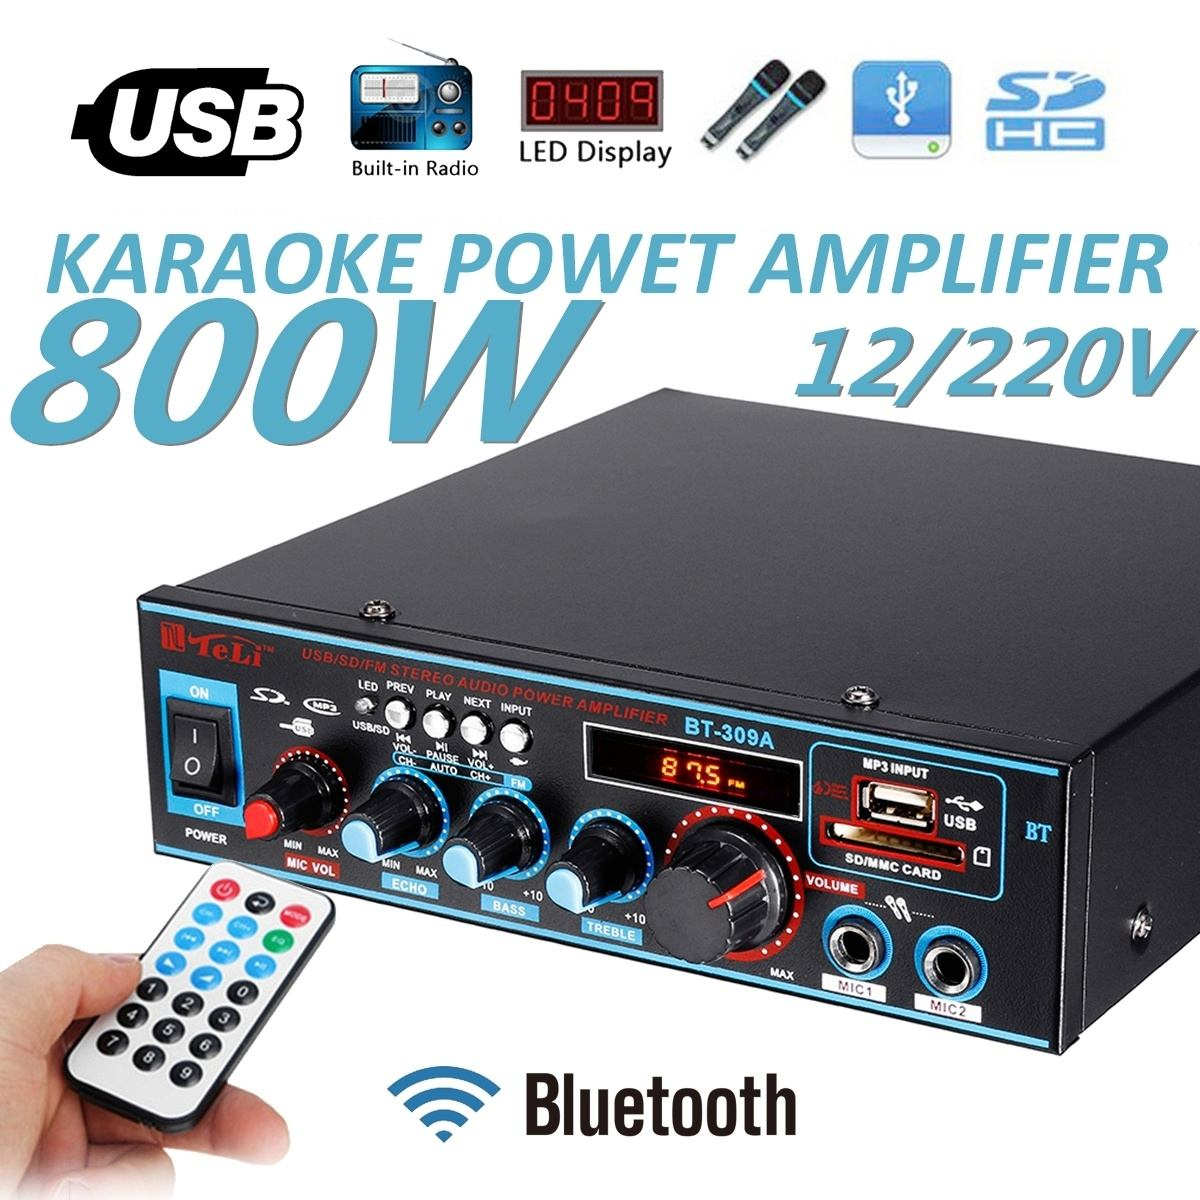 12/220V 800W 2CH Equalizer Amplifier Audio bluetooth Stereo Power Amplifier Home Theater Amplifiers HIFI FM USB SD Cards